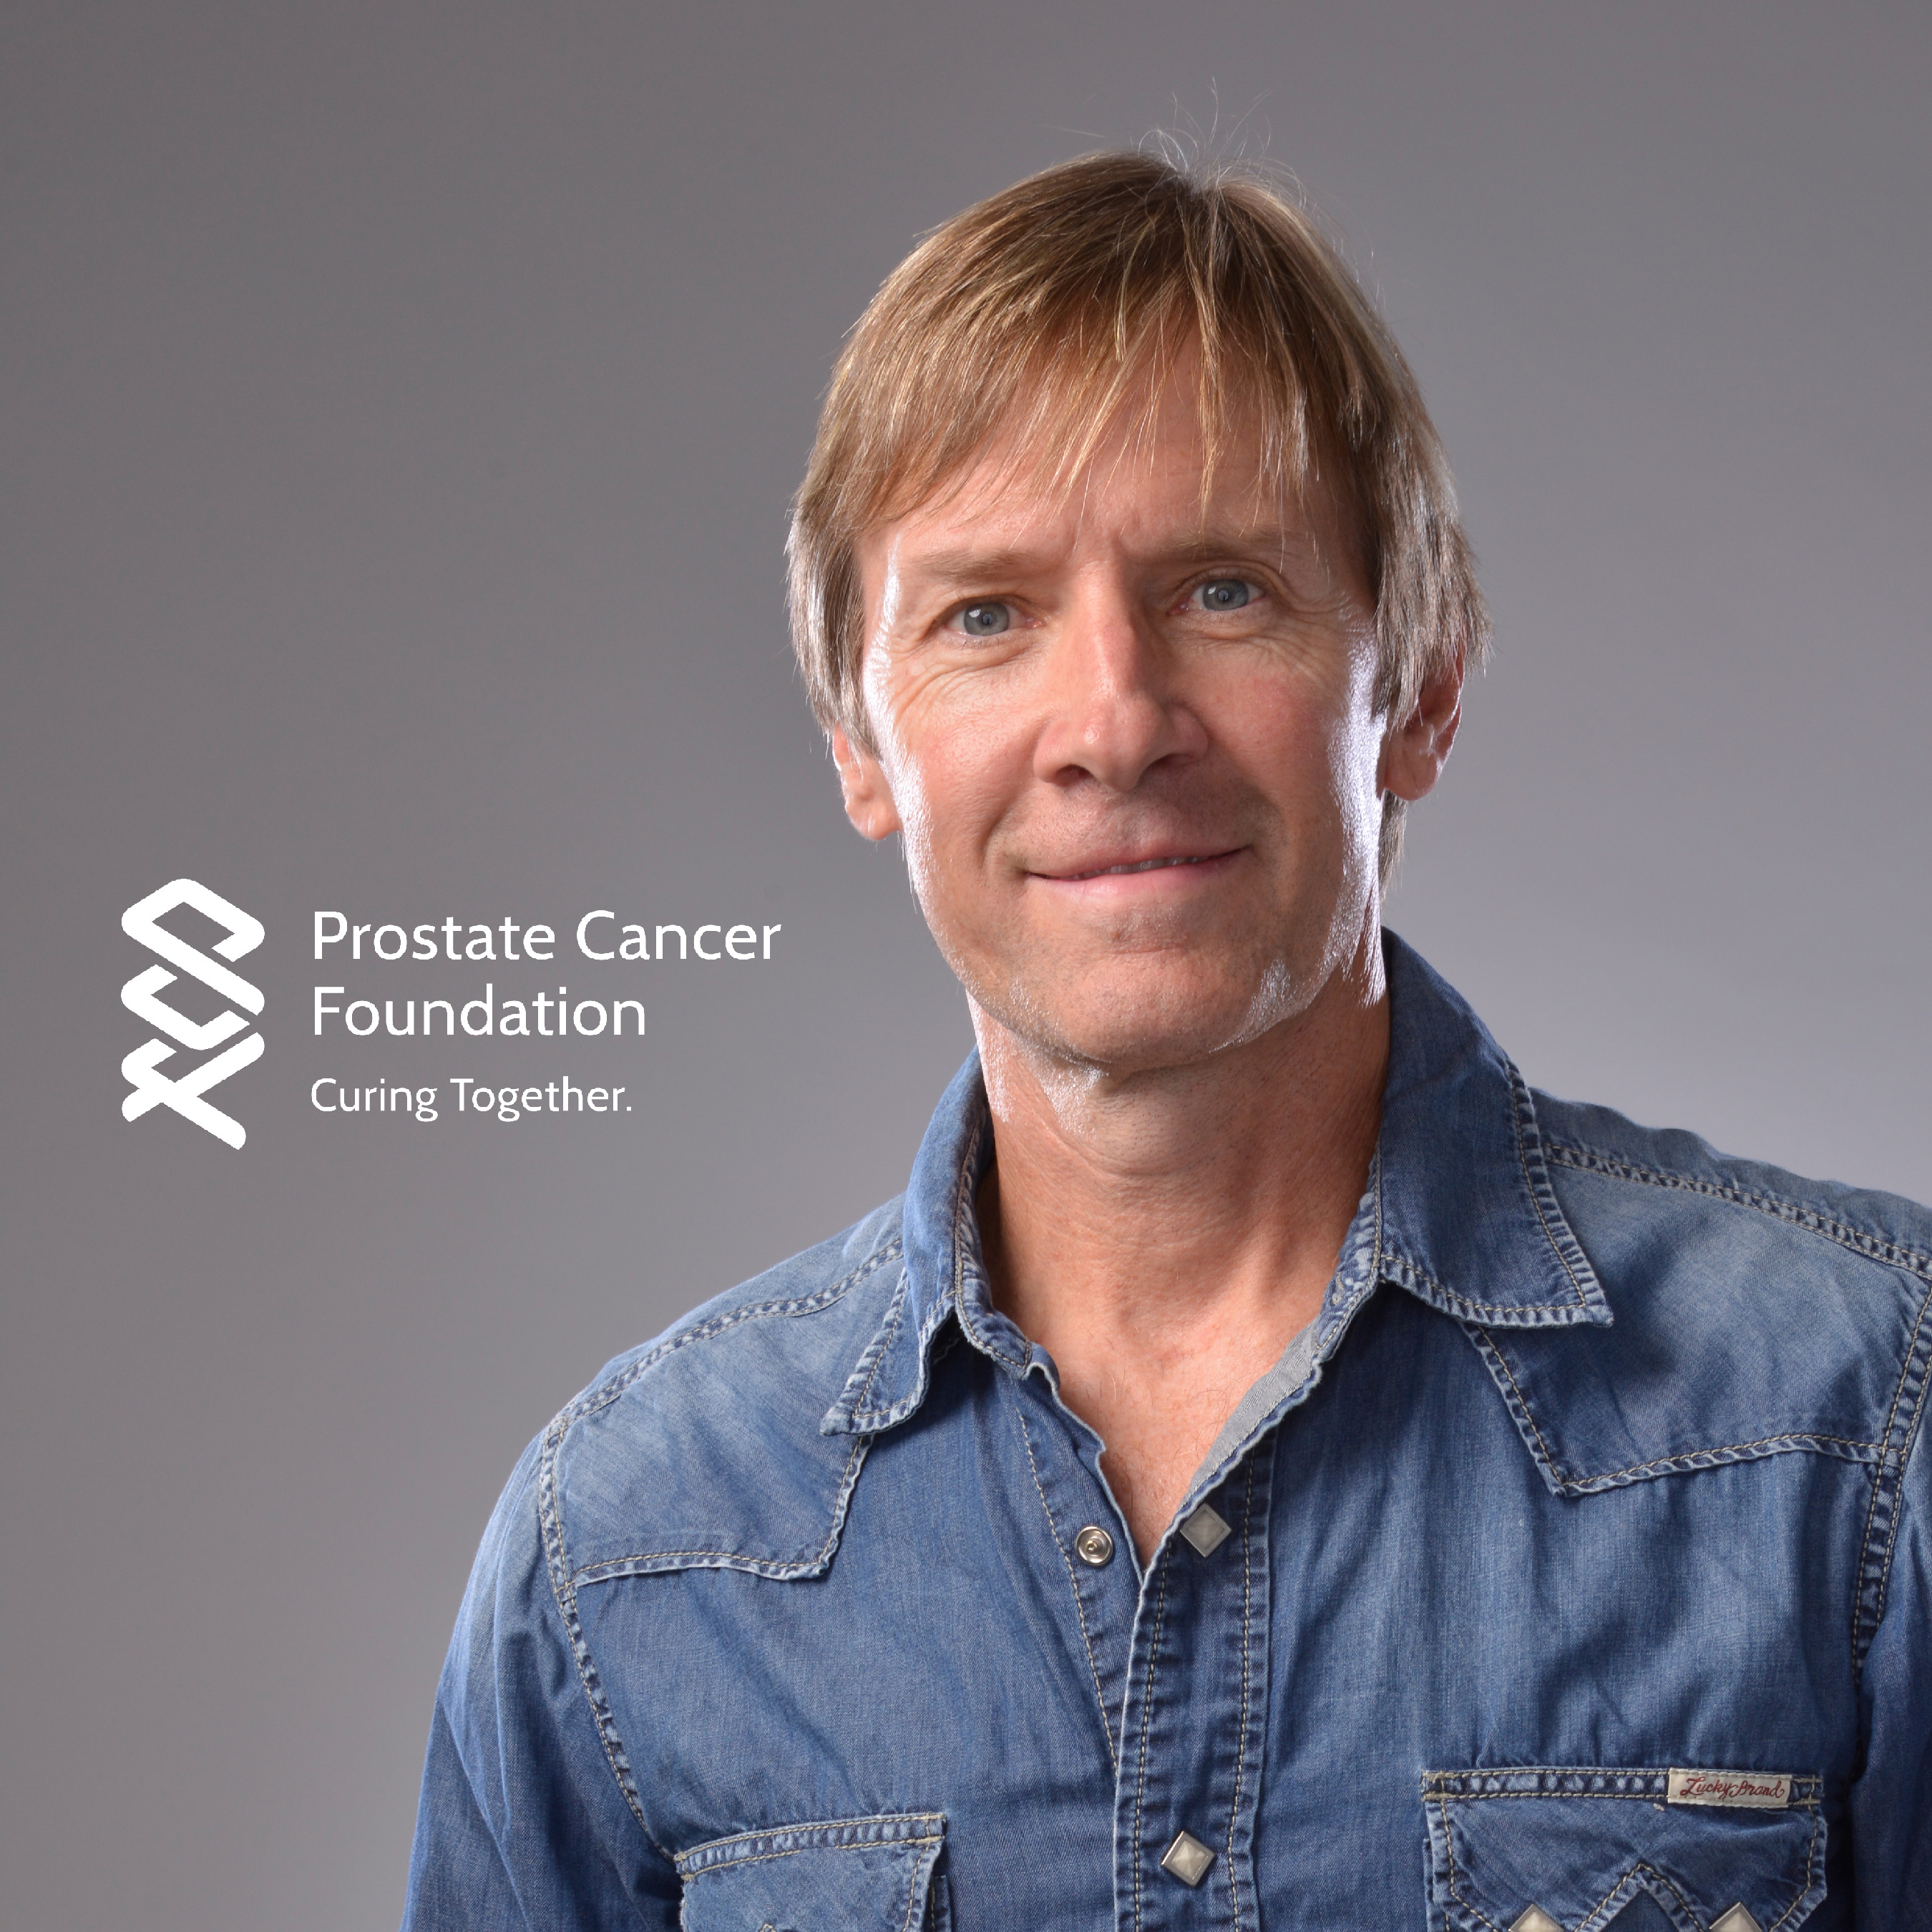 Prostate Cancer Foundation Launches New, Patient-Centric Brand